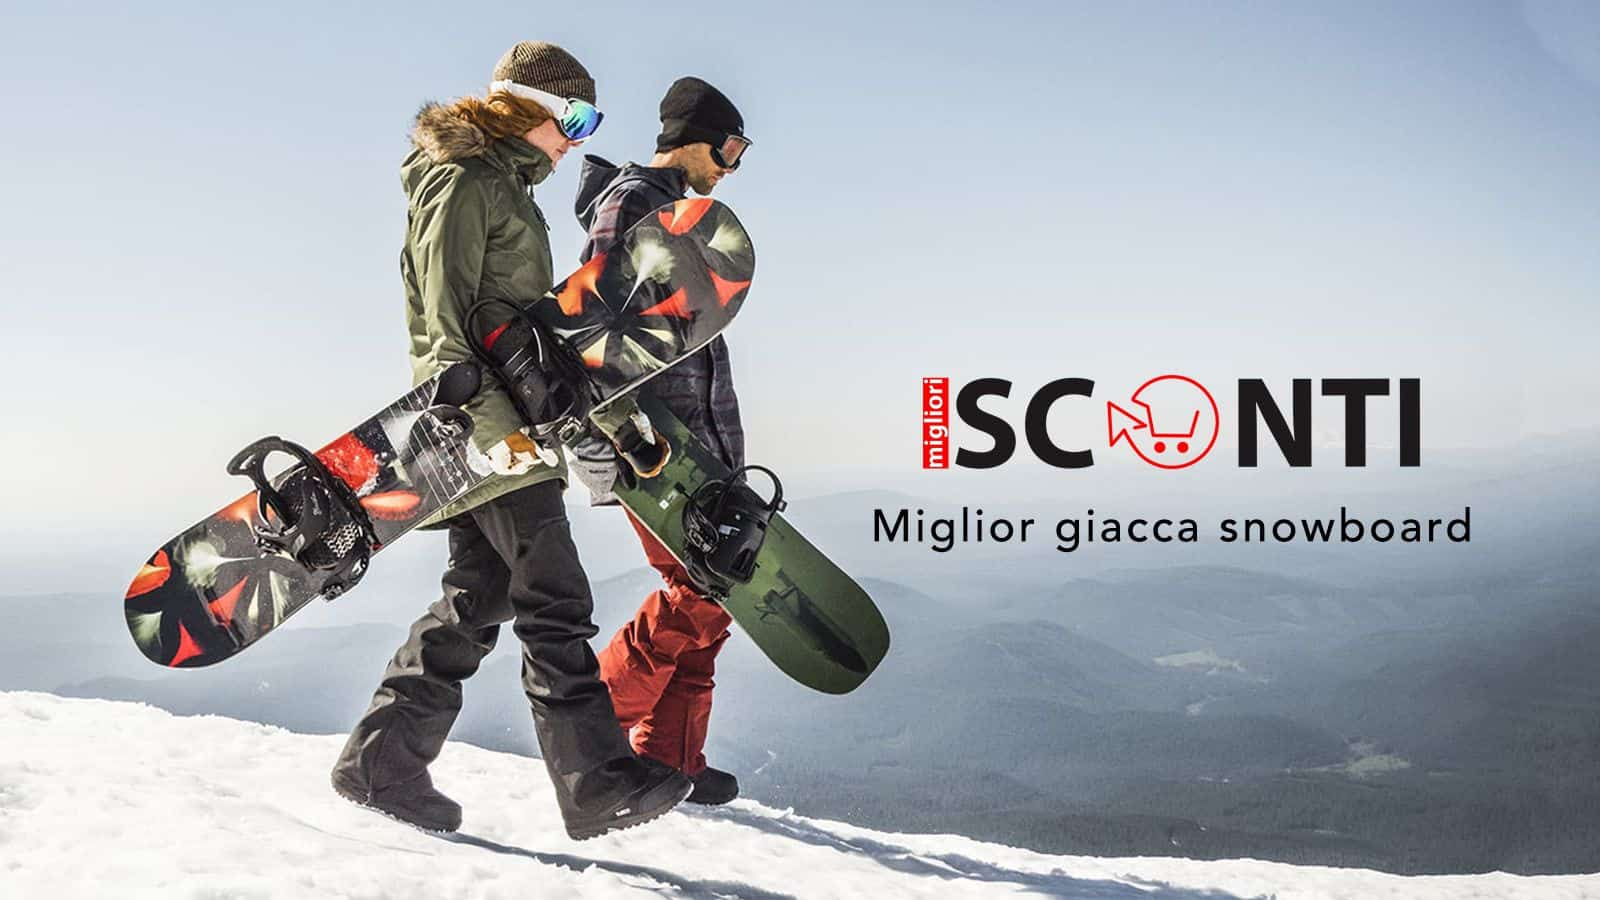 Giacca snowboard